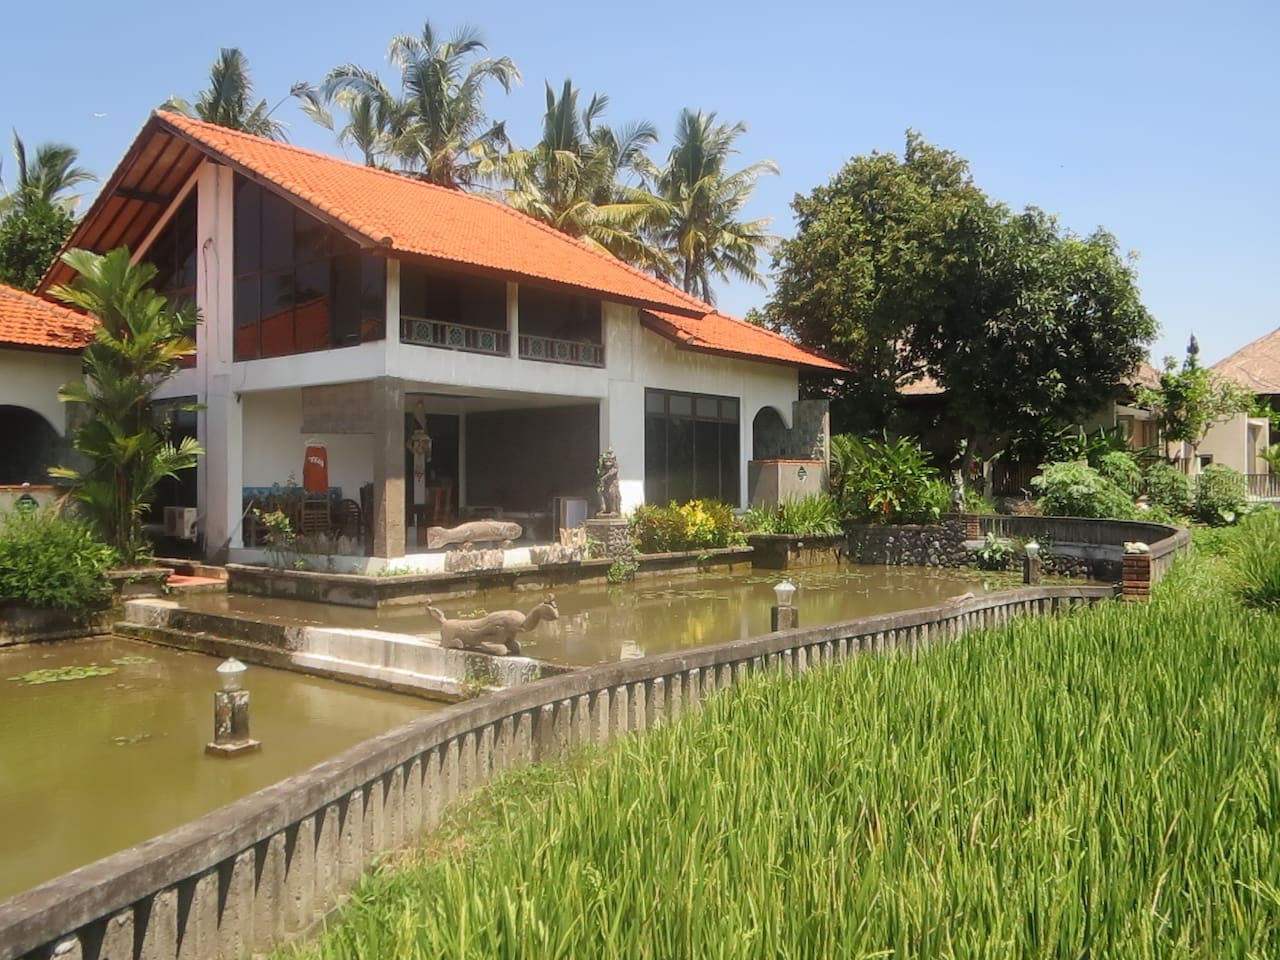 Exterior House with lotus pond and ricefield